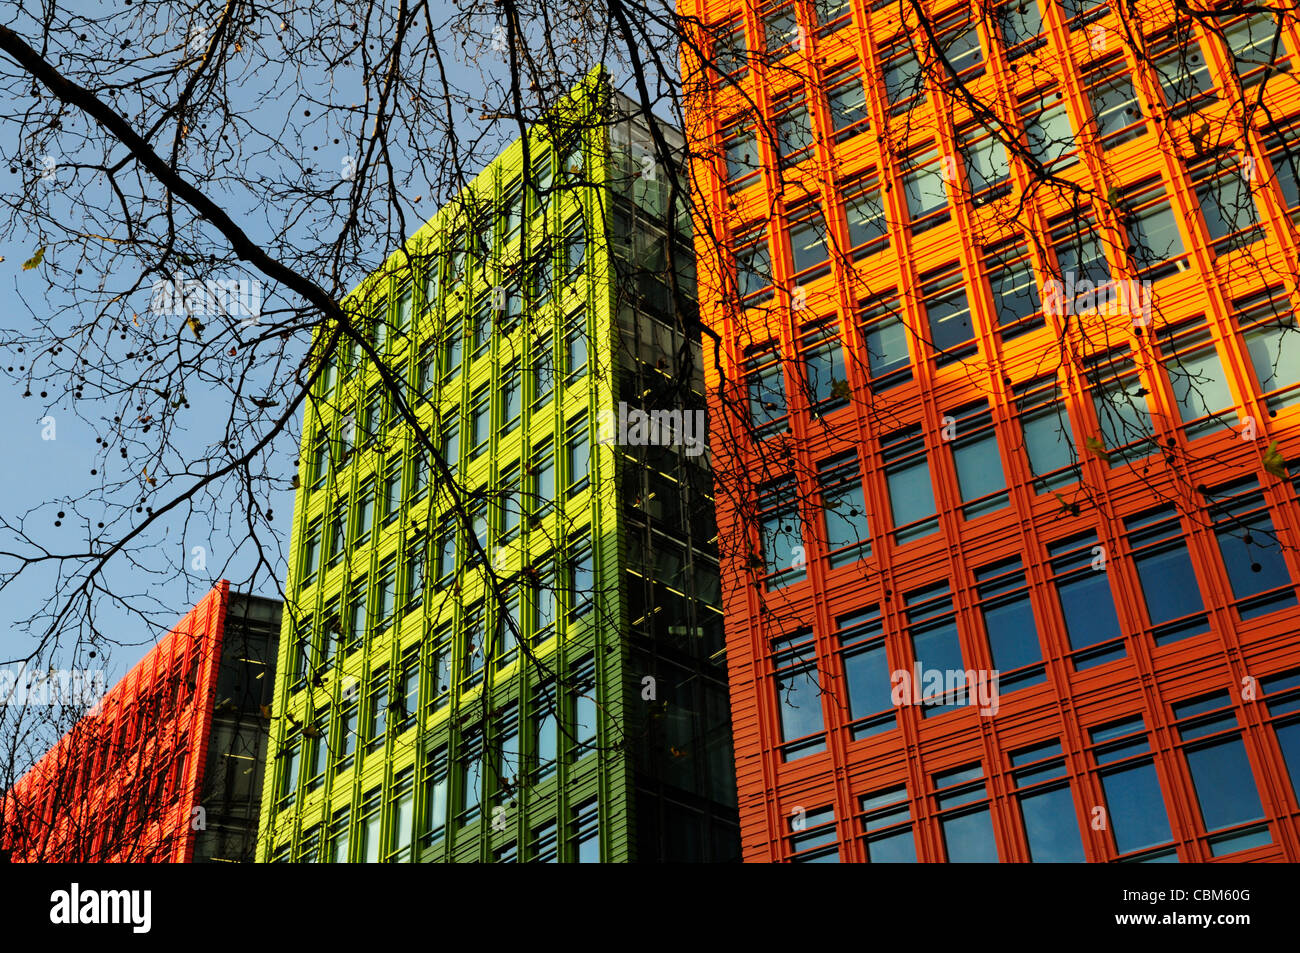 Abstract Building Detail, Central St Giles, London, England, UK - Stock Image